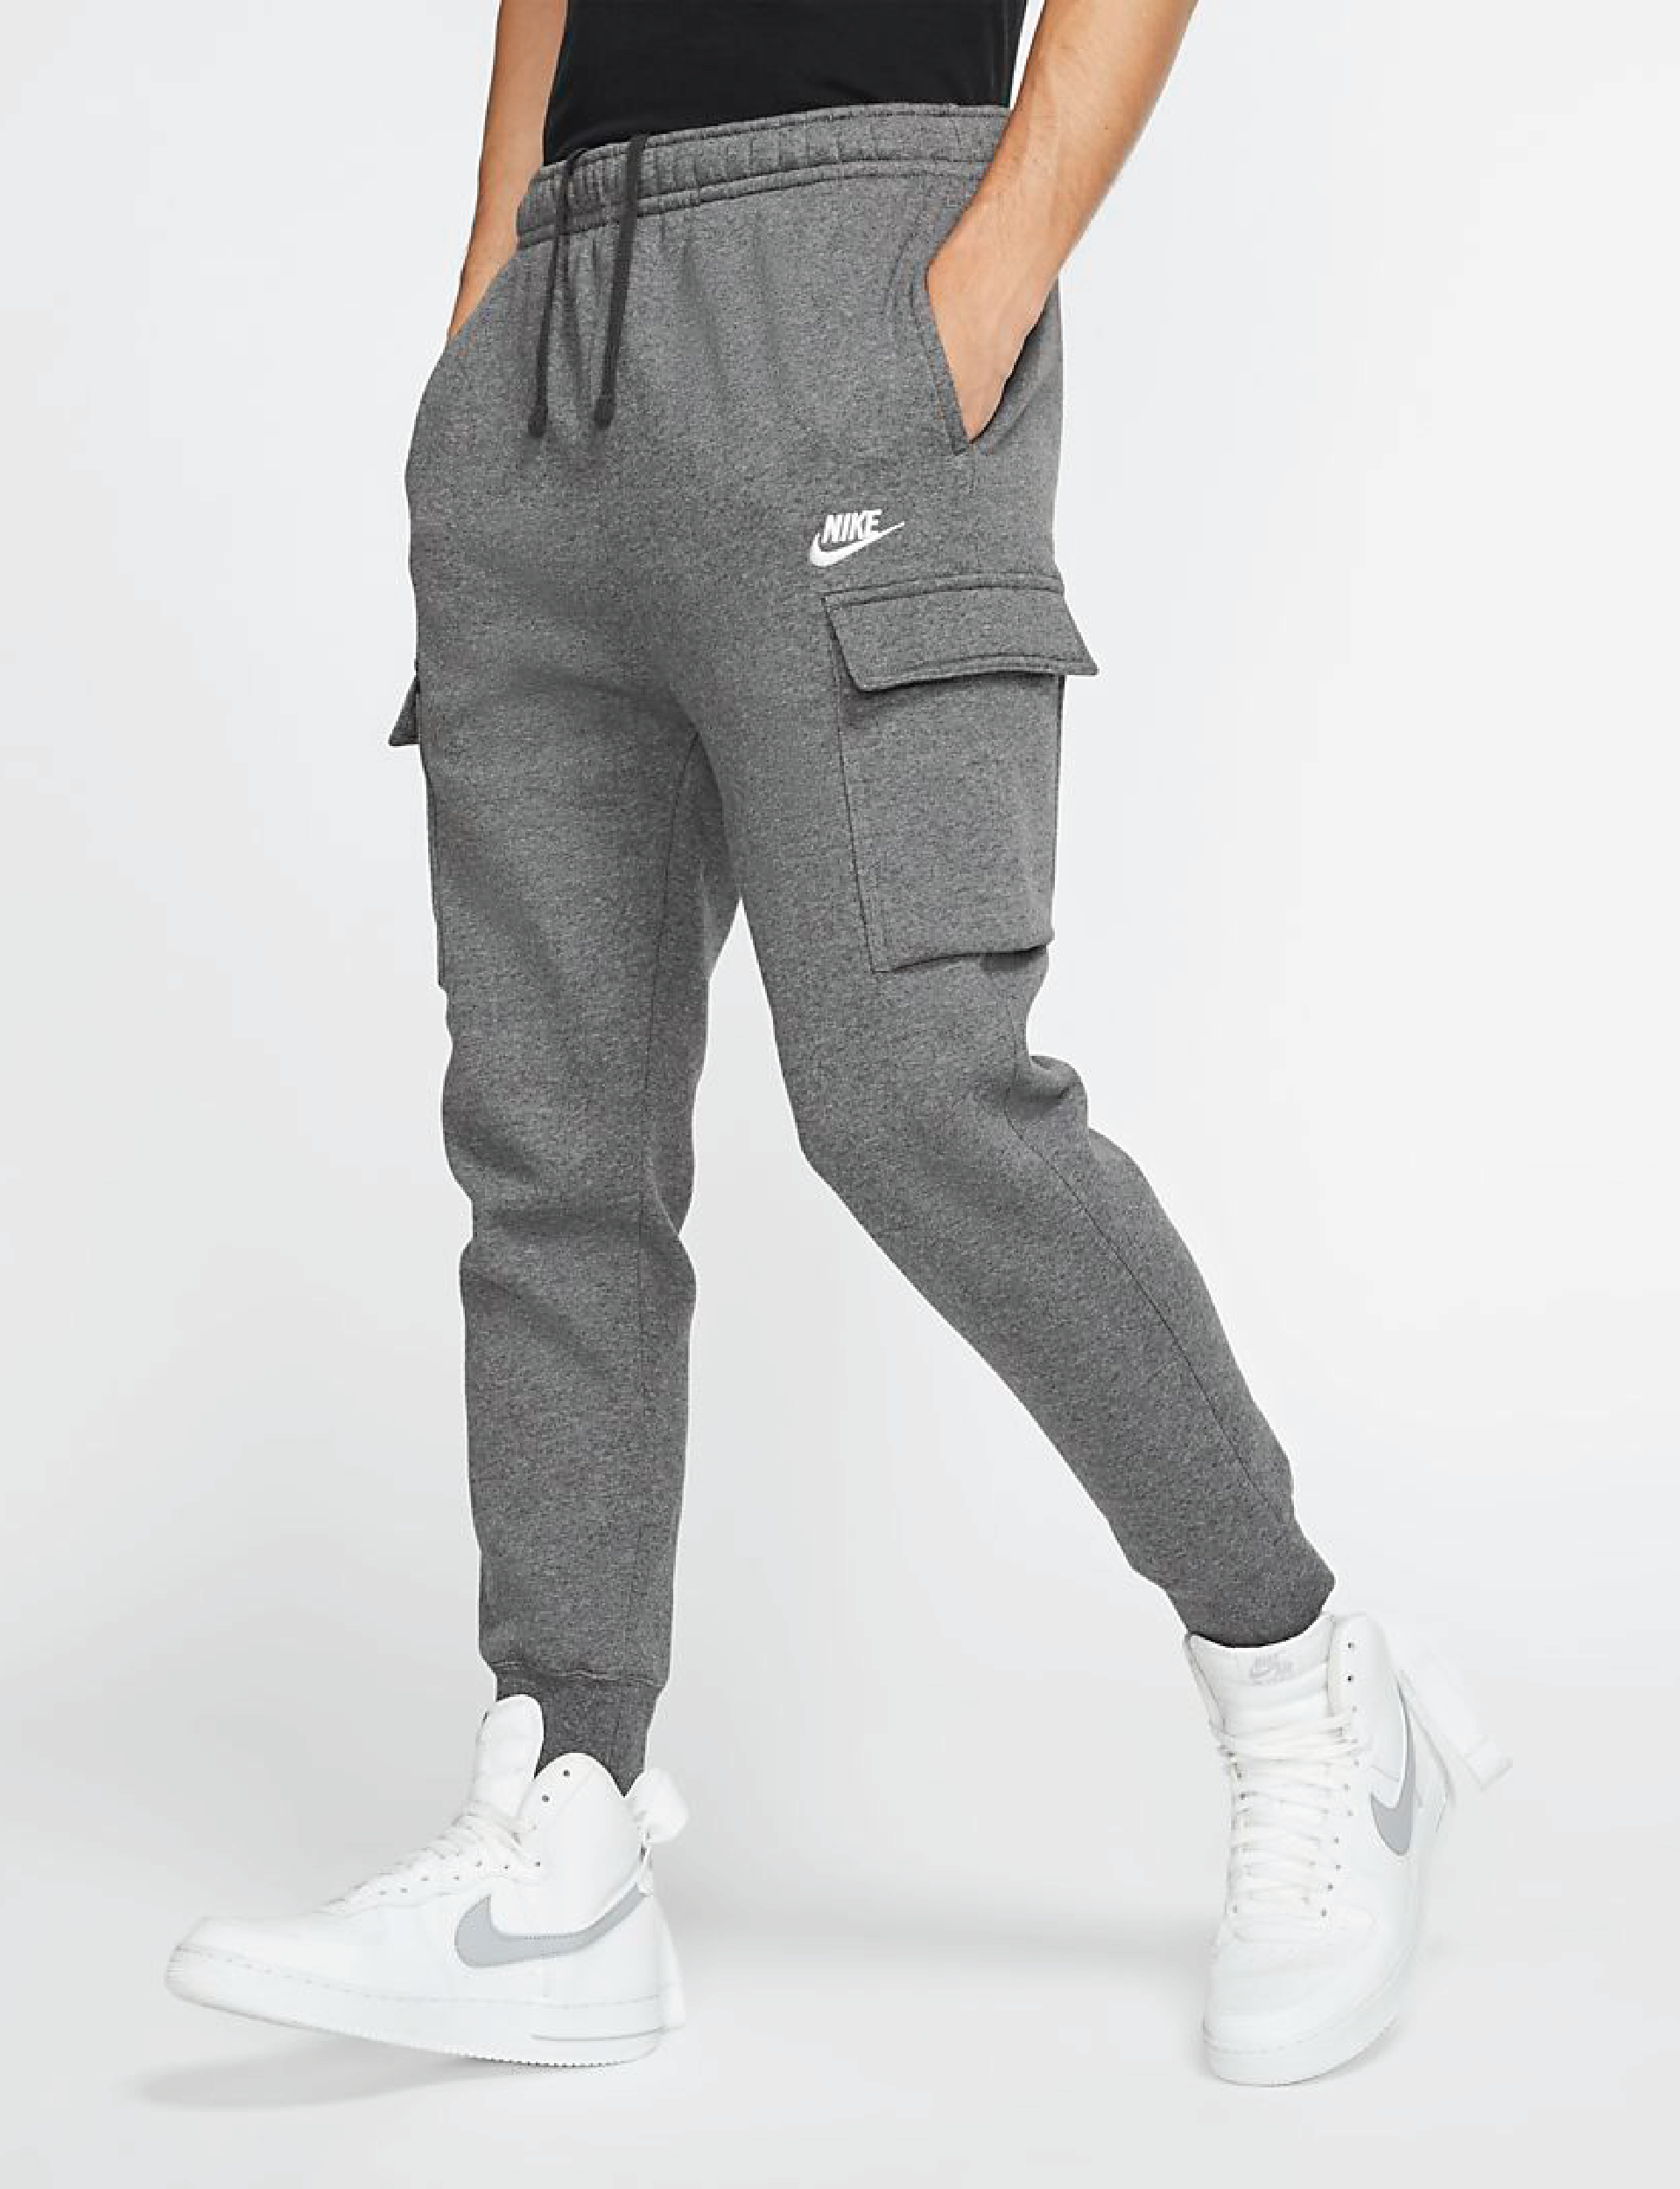 A model wearing cargo fleece pants with four pockets and elastic waistband